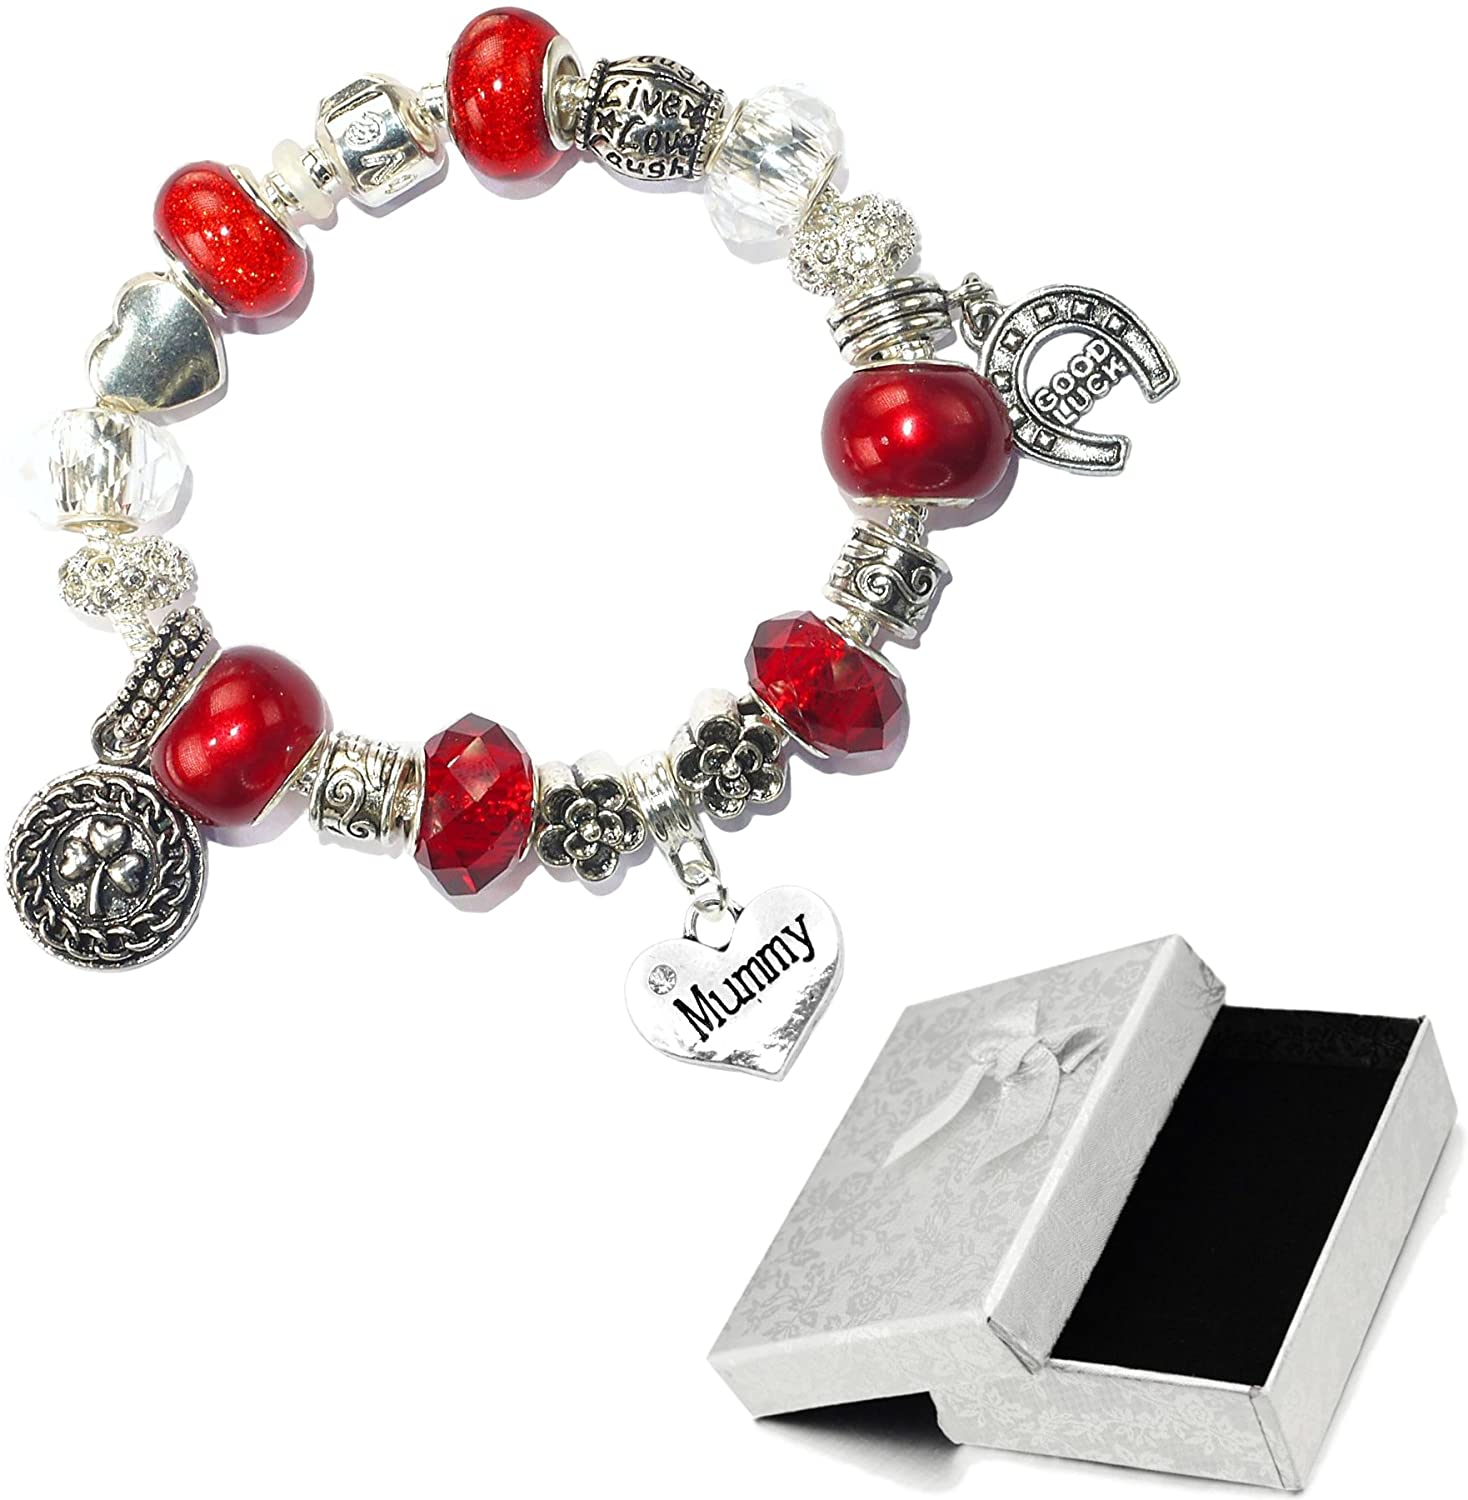 Charm Buddy Mummy Mom Red Silver Crystal Good Luck Pandora Style Bracelet With Charms Gift Box